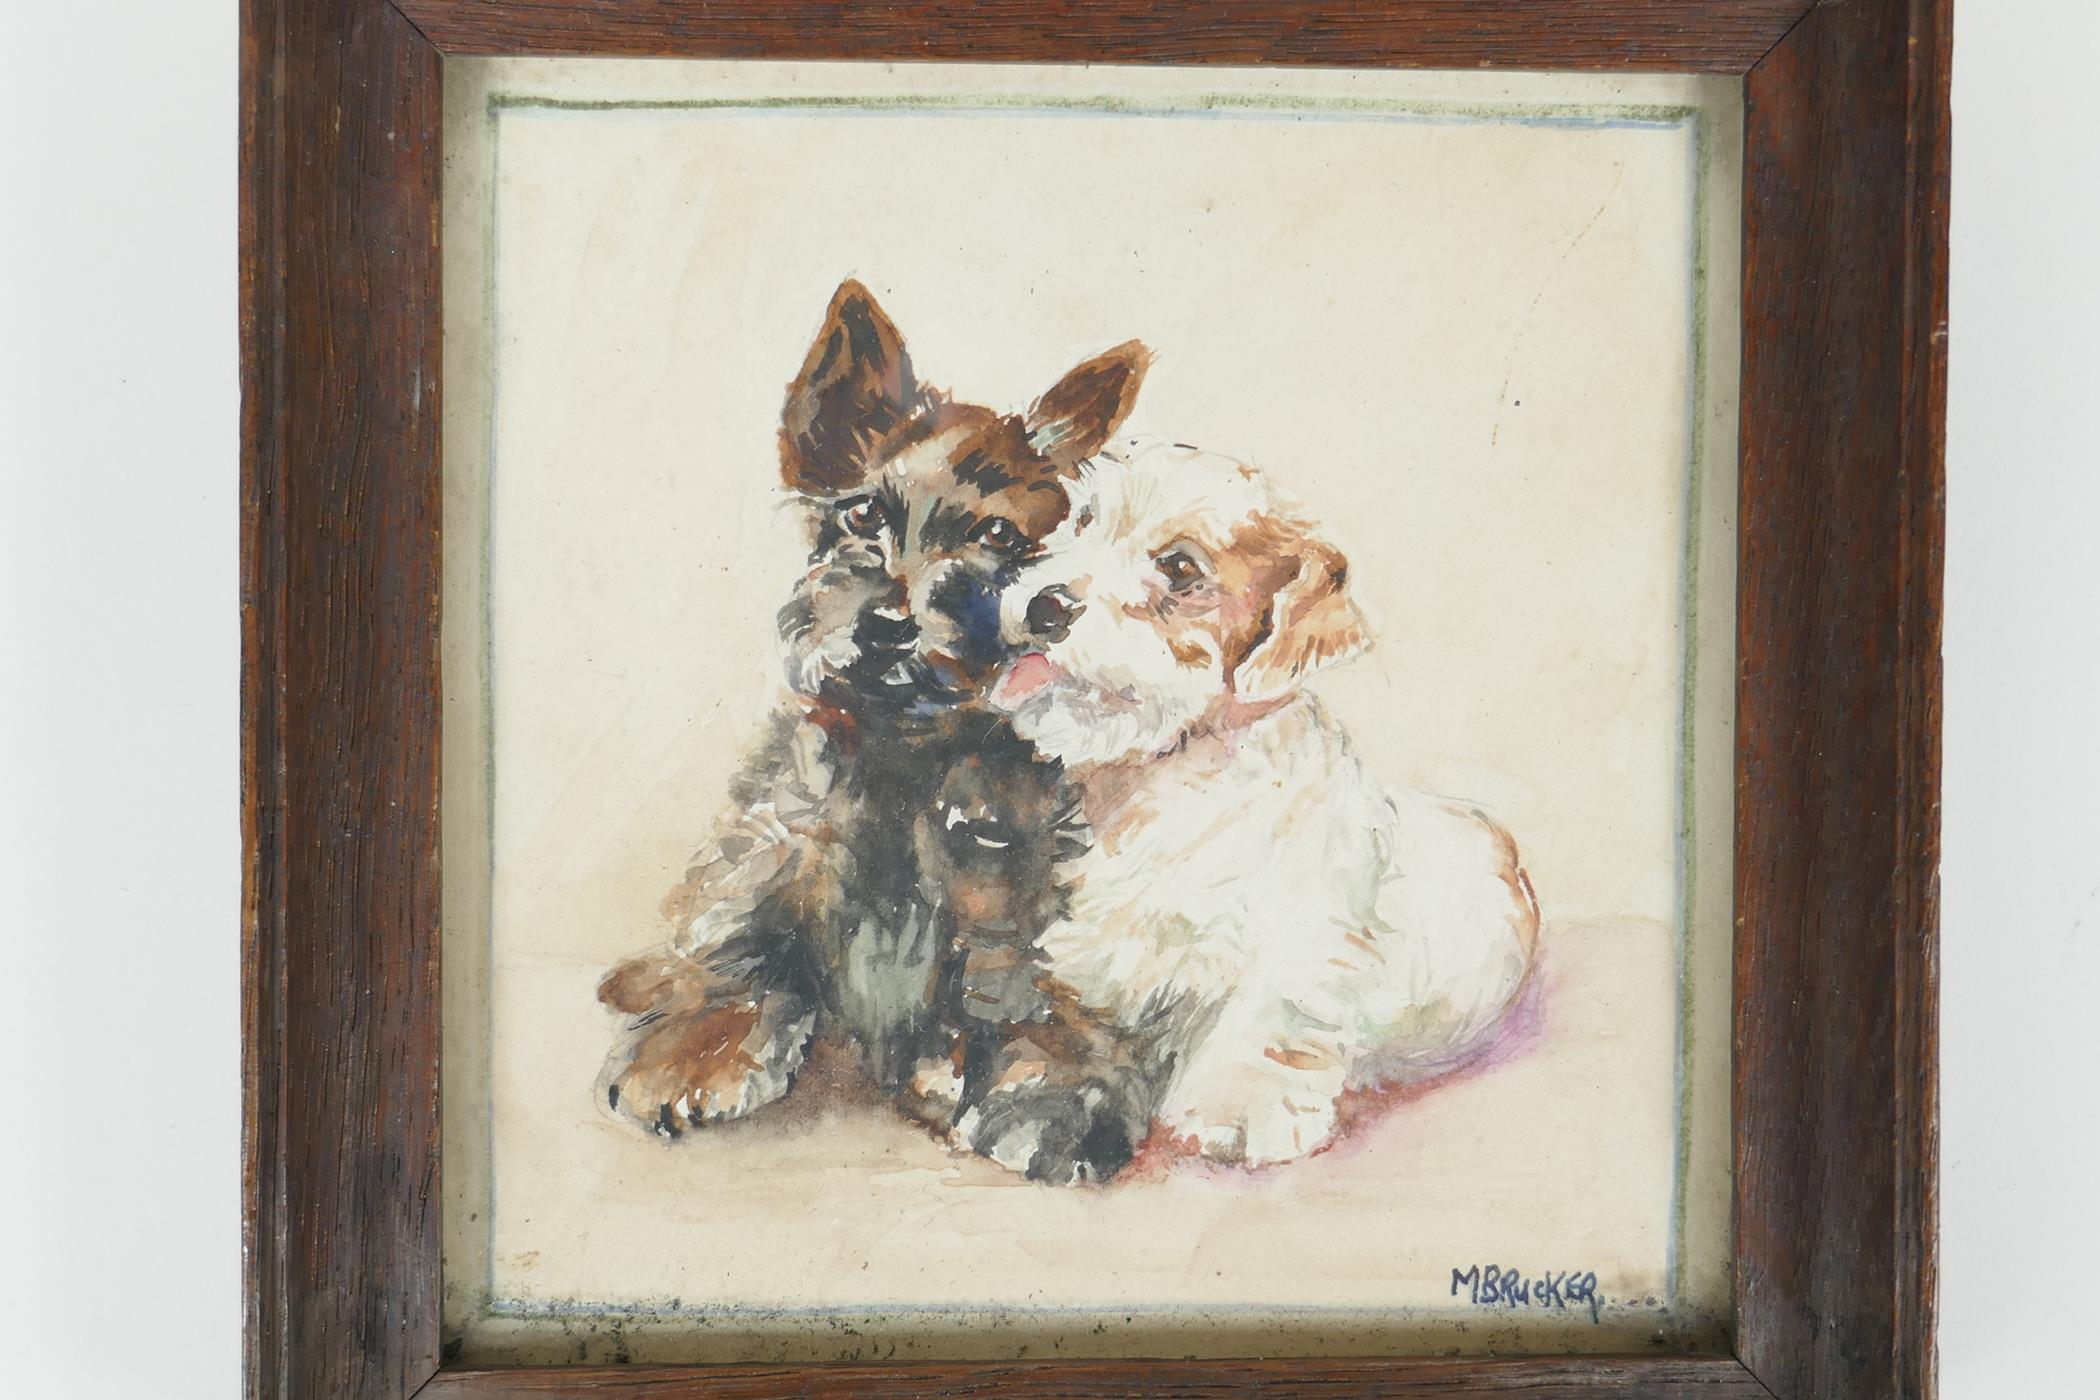 """M. Brucker, small watercolour of two dogs, signed, 5"""" x 5"""" - Image 2 of 4"""